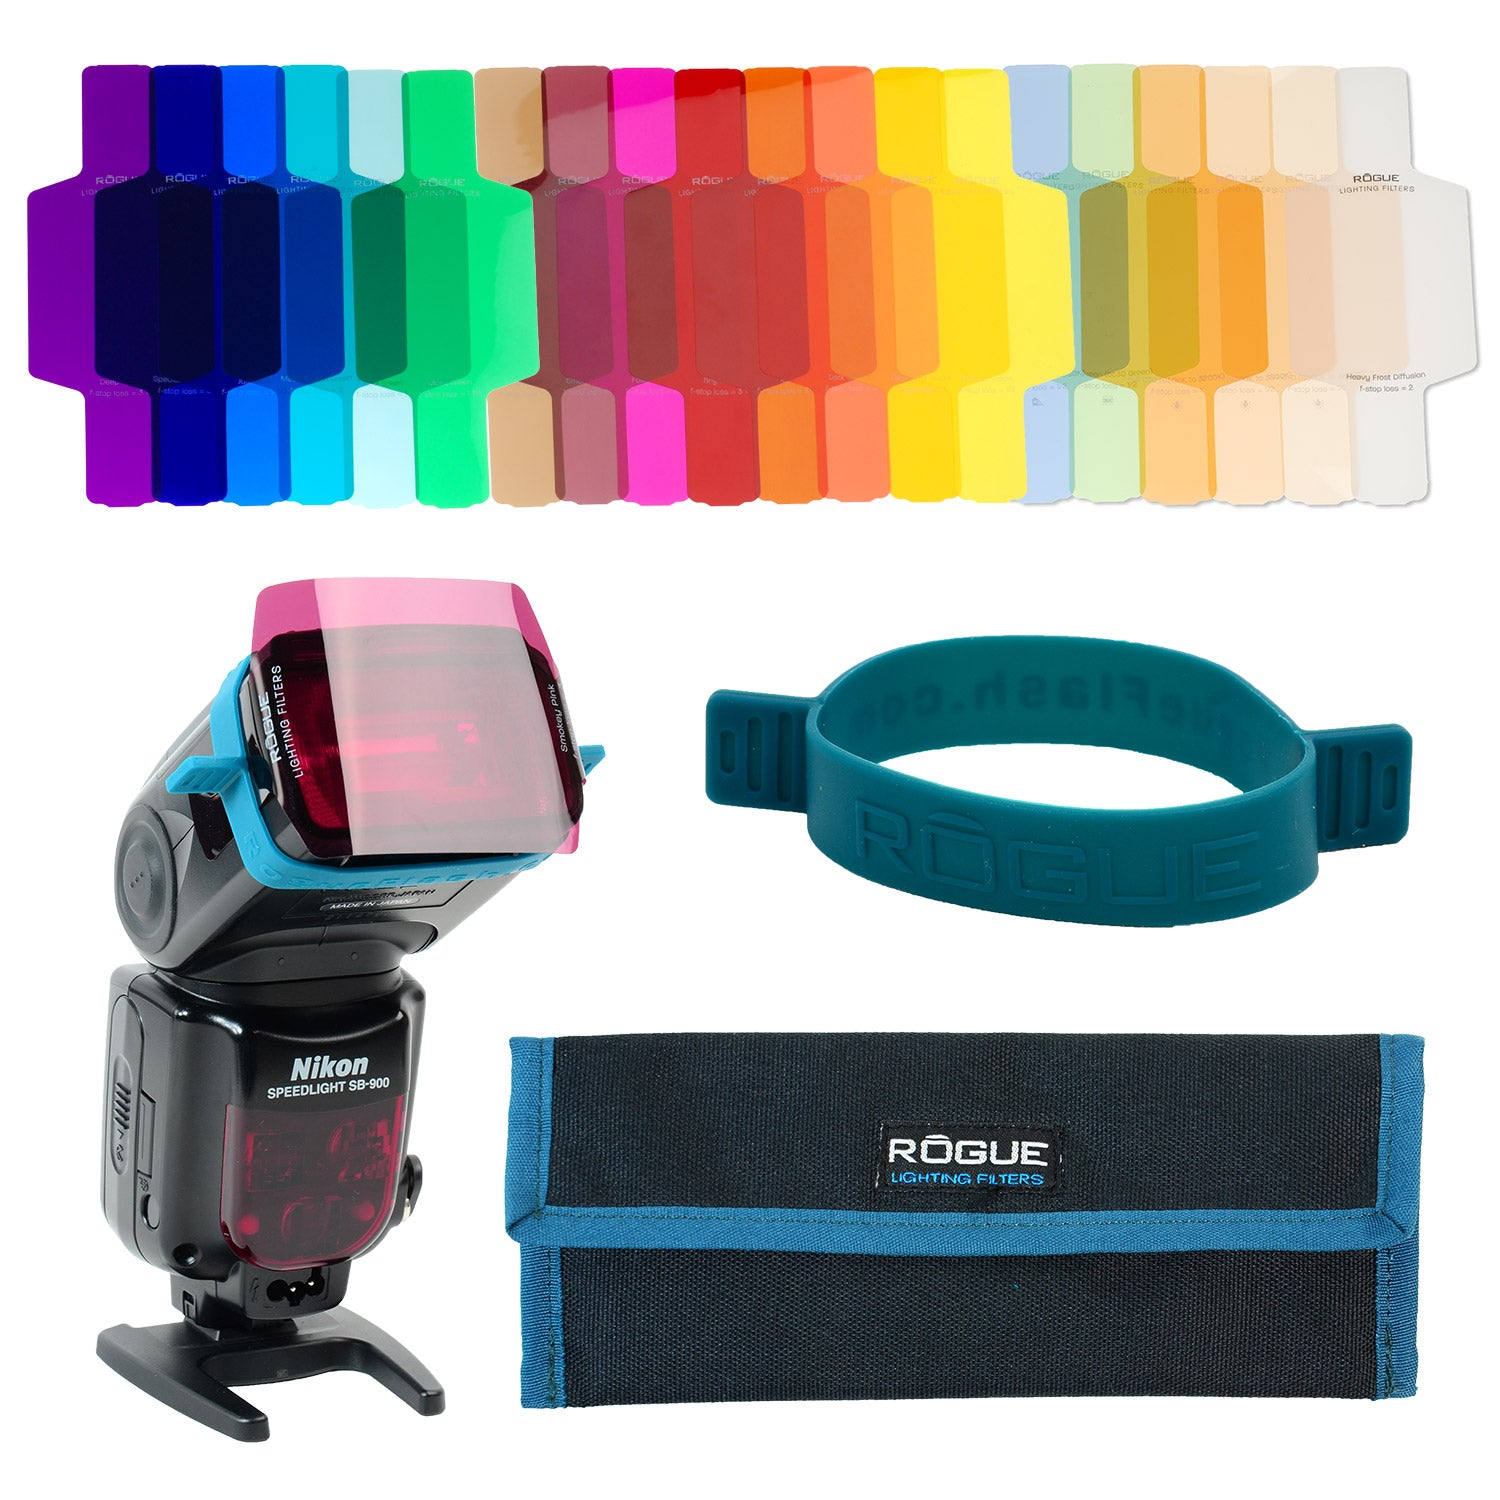 free rogue gels with rogue flashbender 2 xl pro lighting system